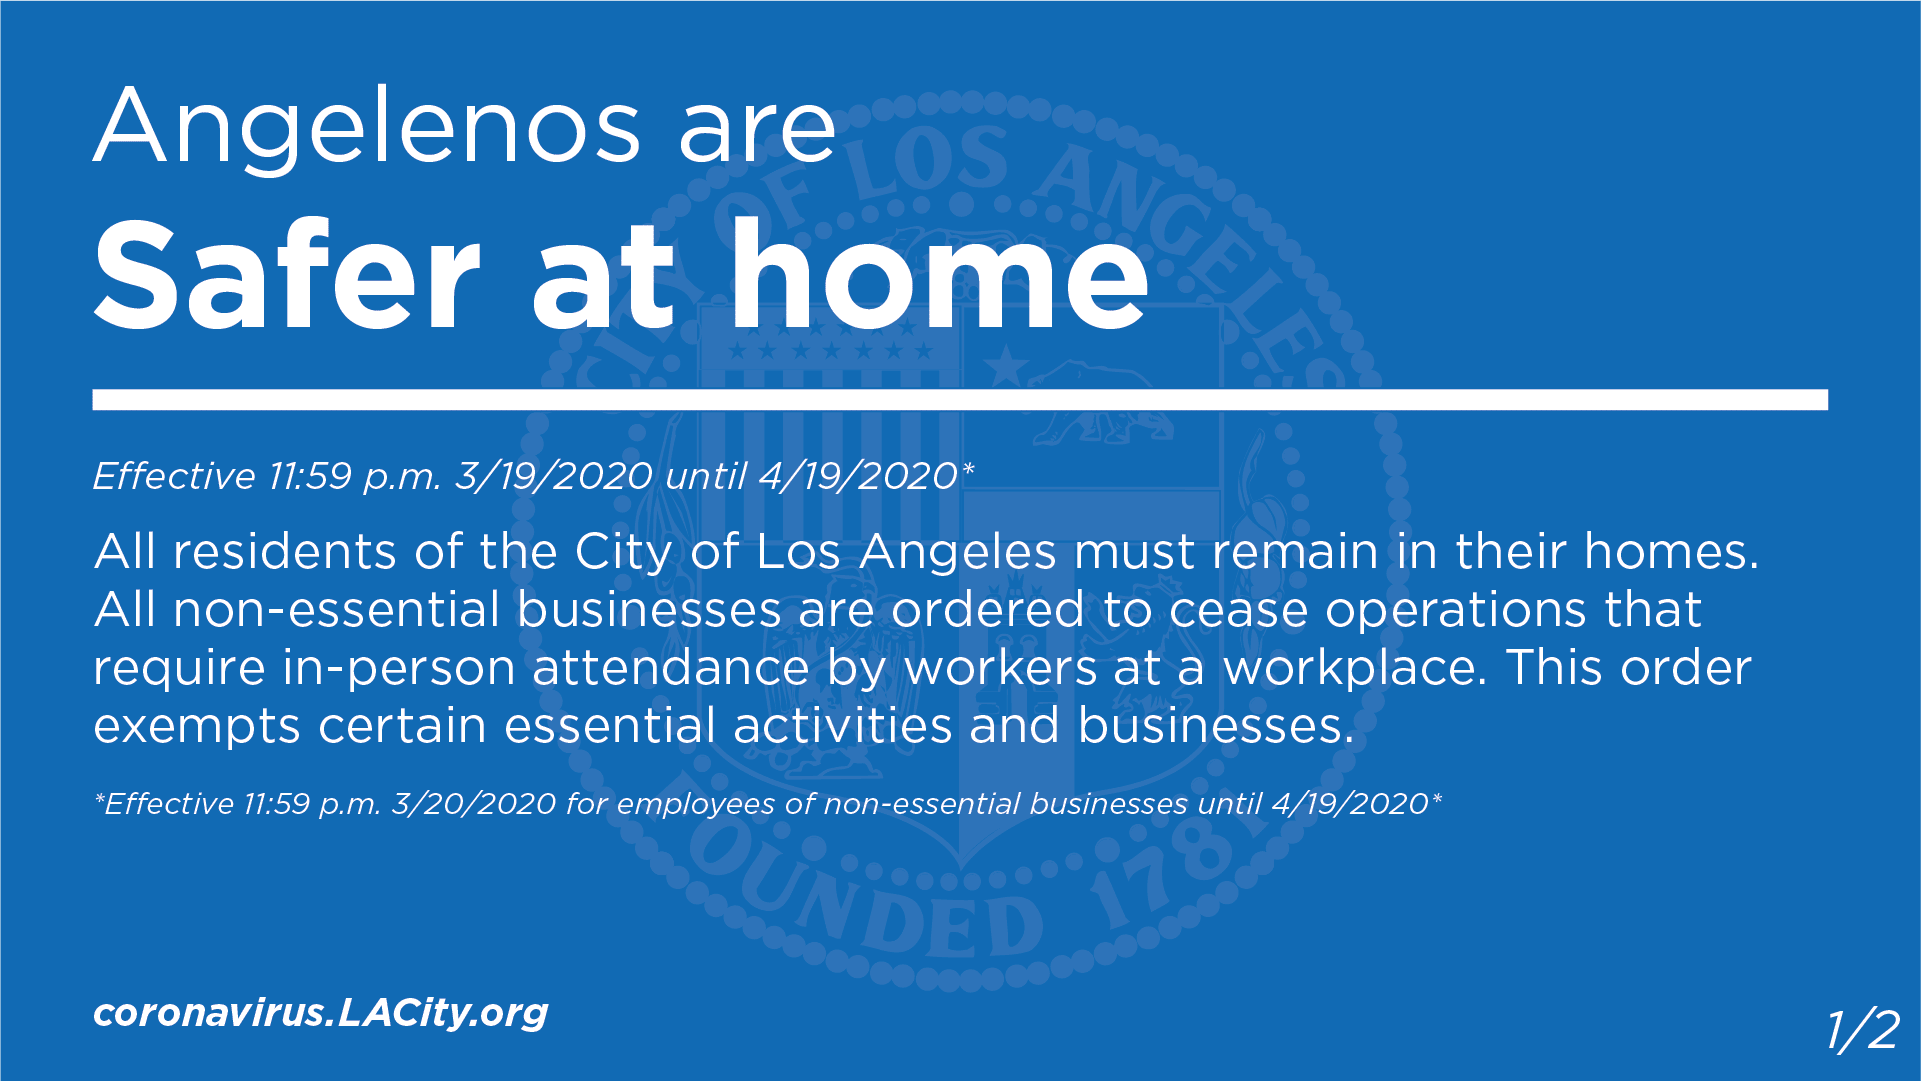 Angelenos are Safer at Home